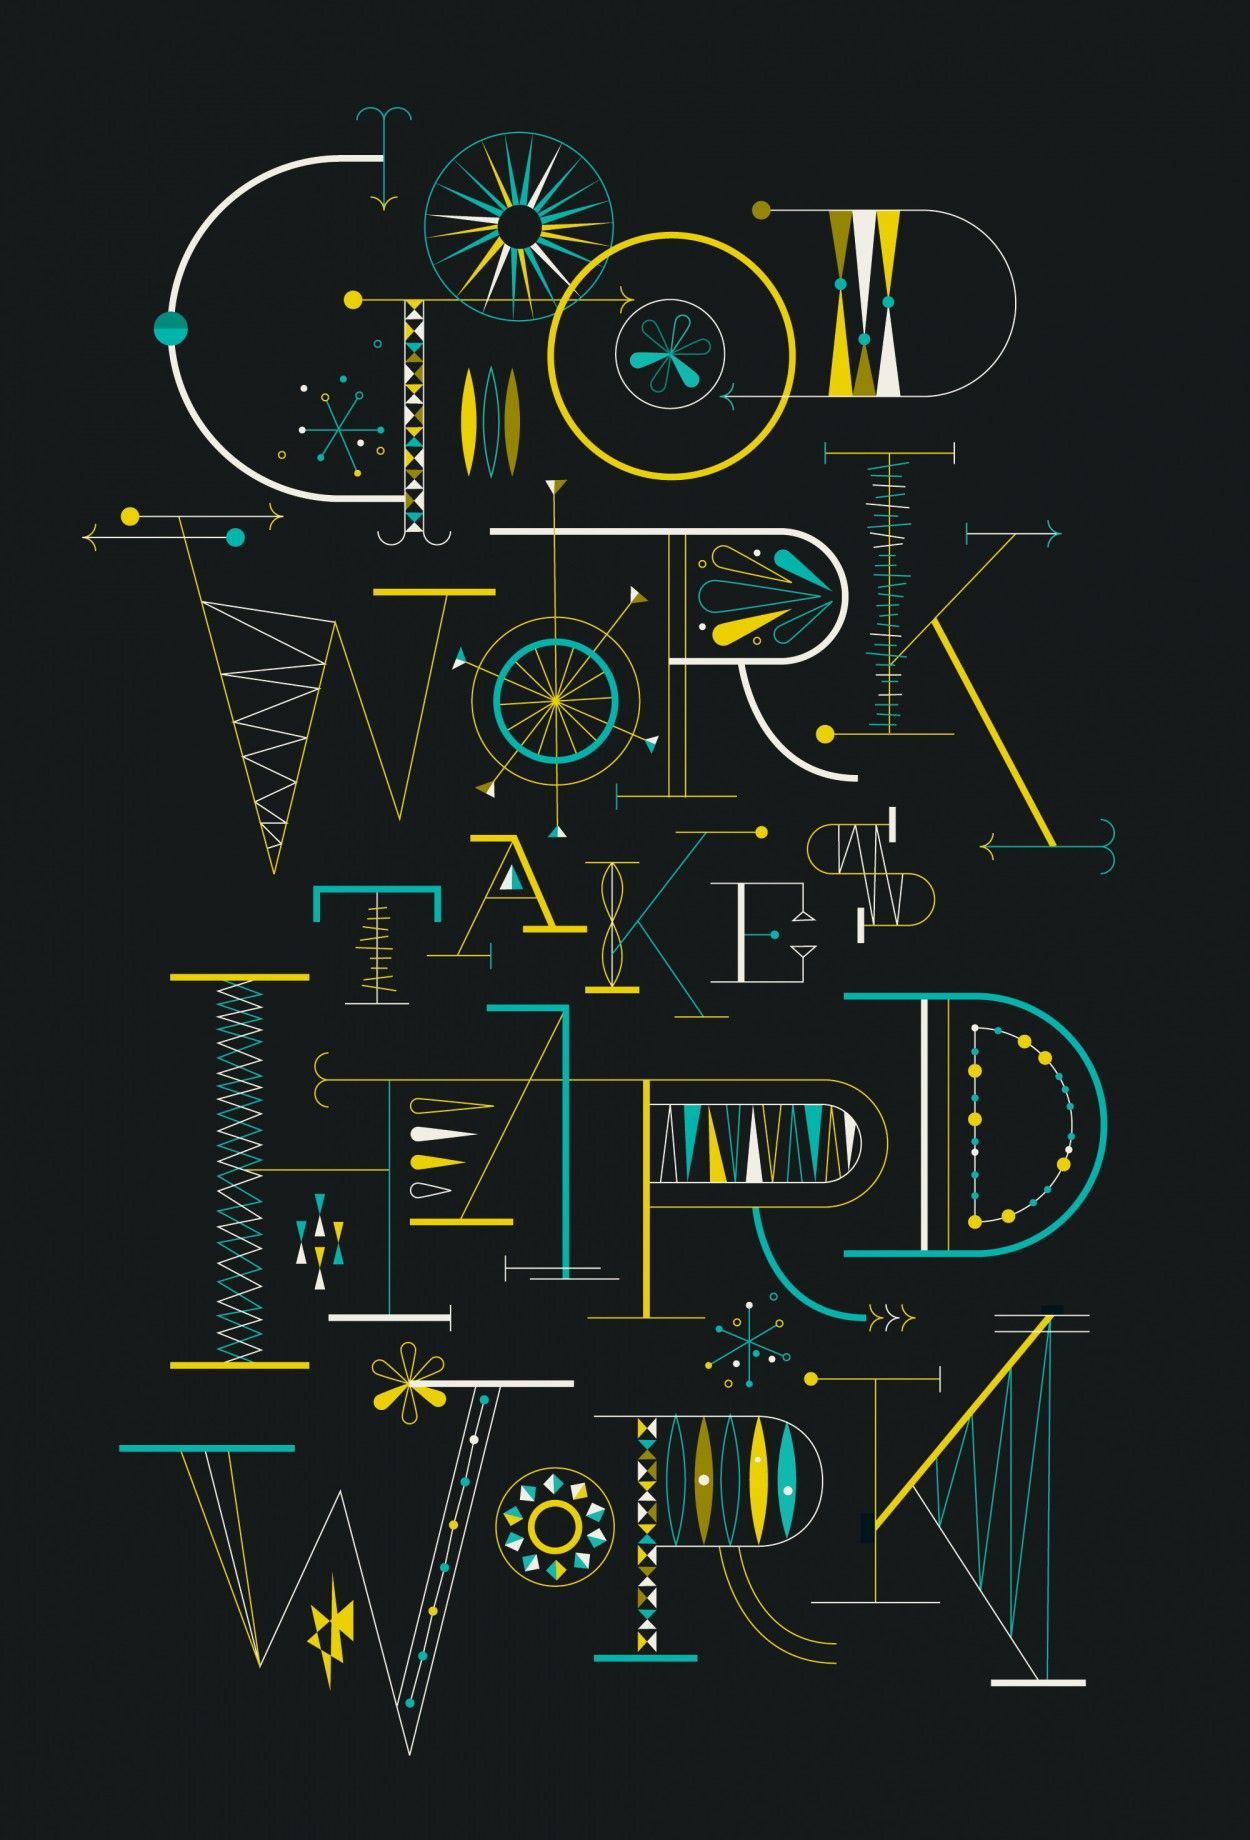 Brent Couchman - Friends of Type Guest Contributor - Good Work Takes Hard Work